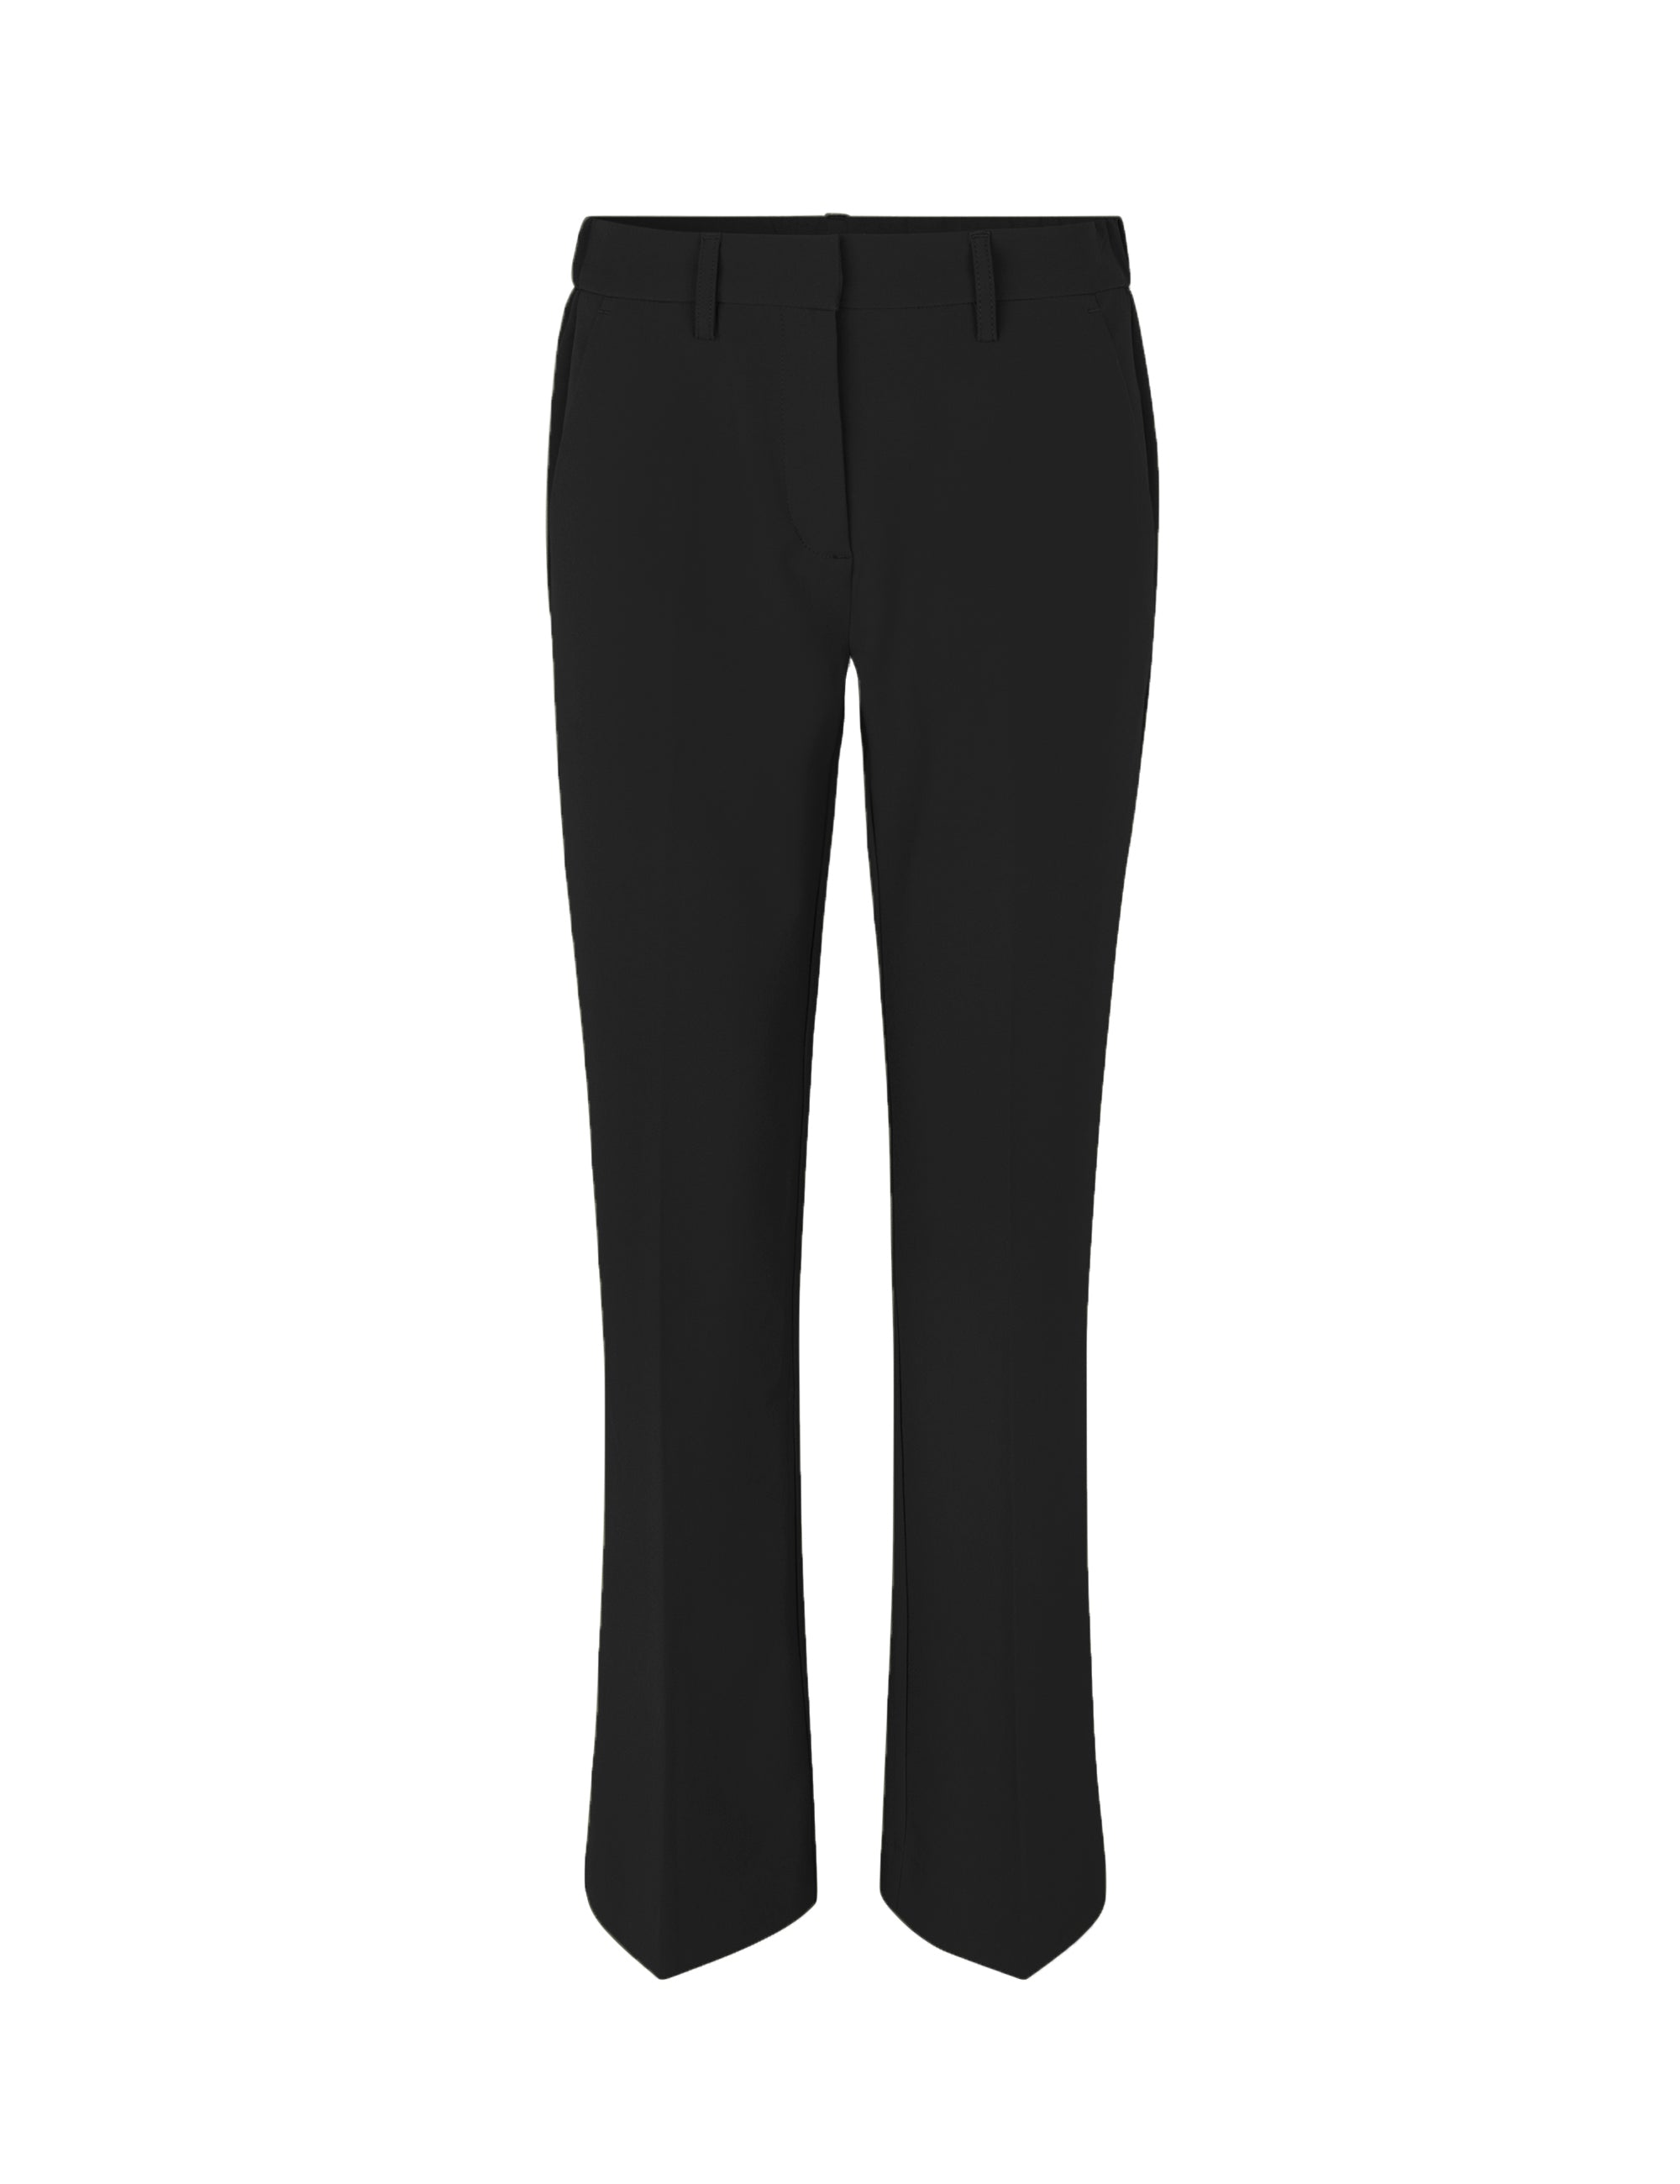 LEVETÉ - HELENA 1 Pants, Black